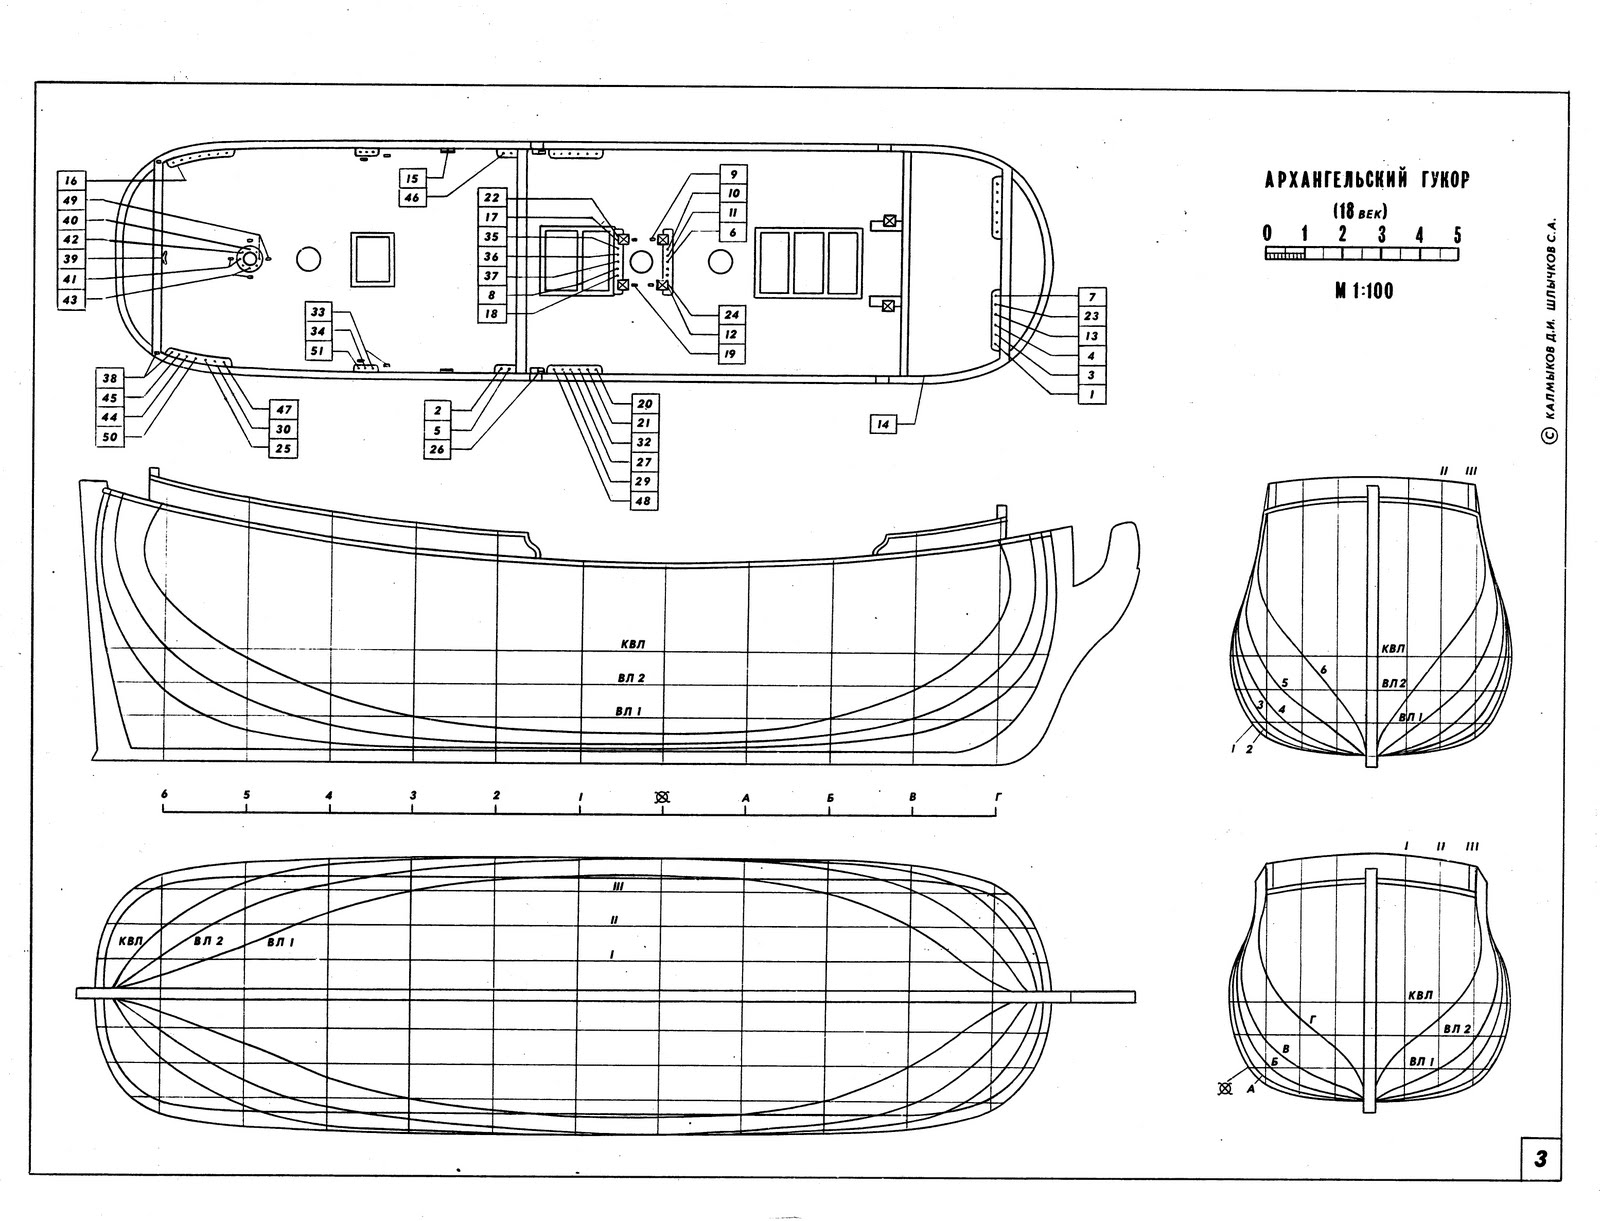 Build DIY How to build wood model ships PDF Plans Wooden